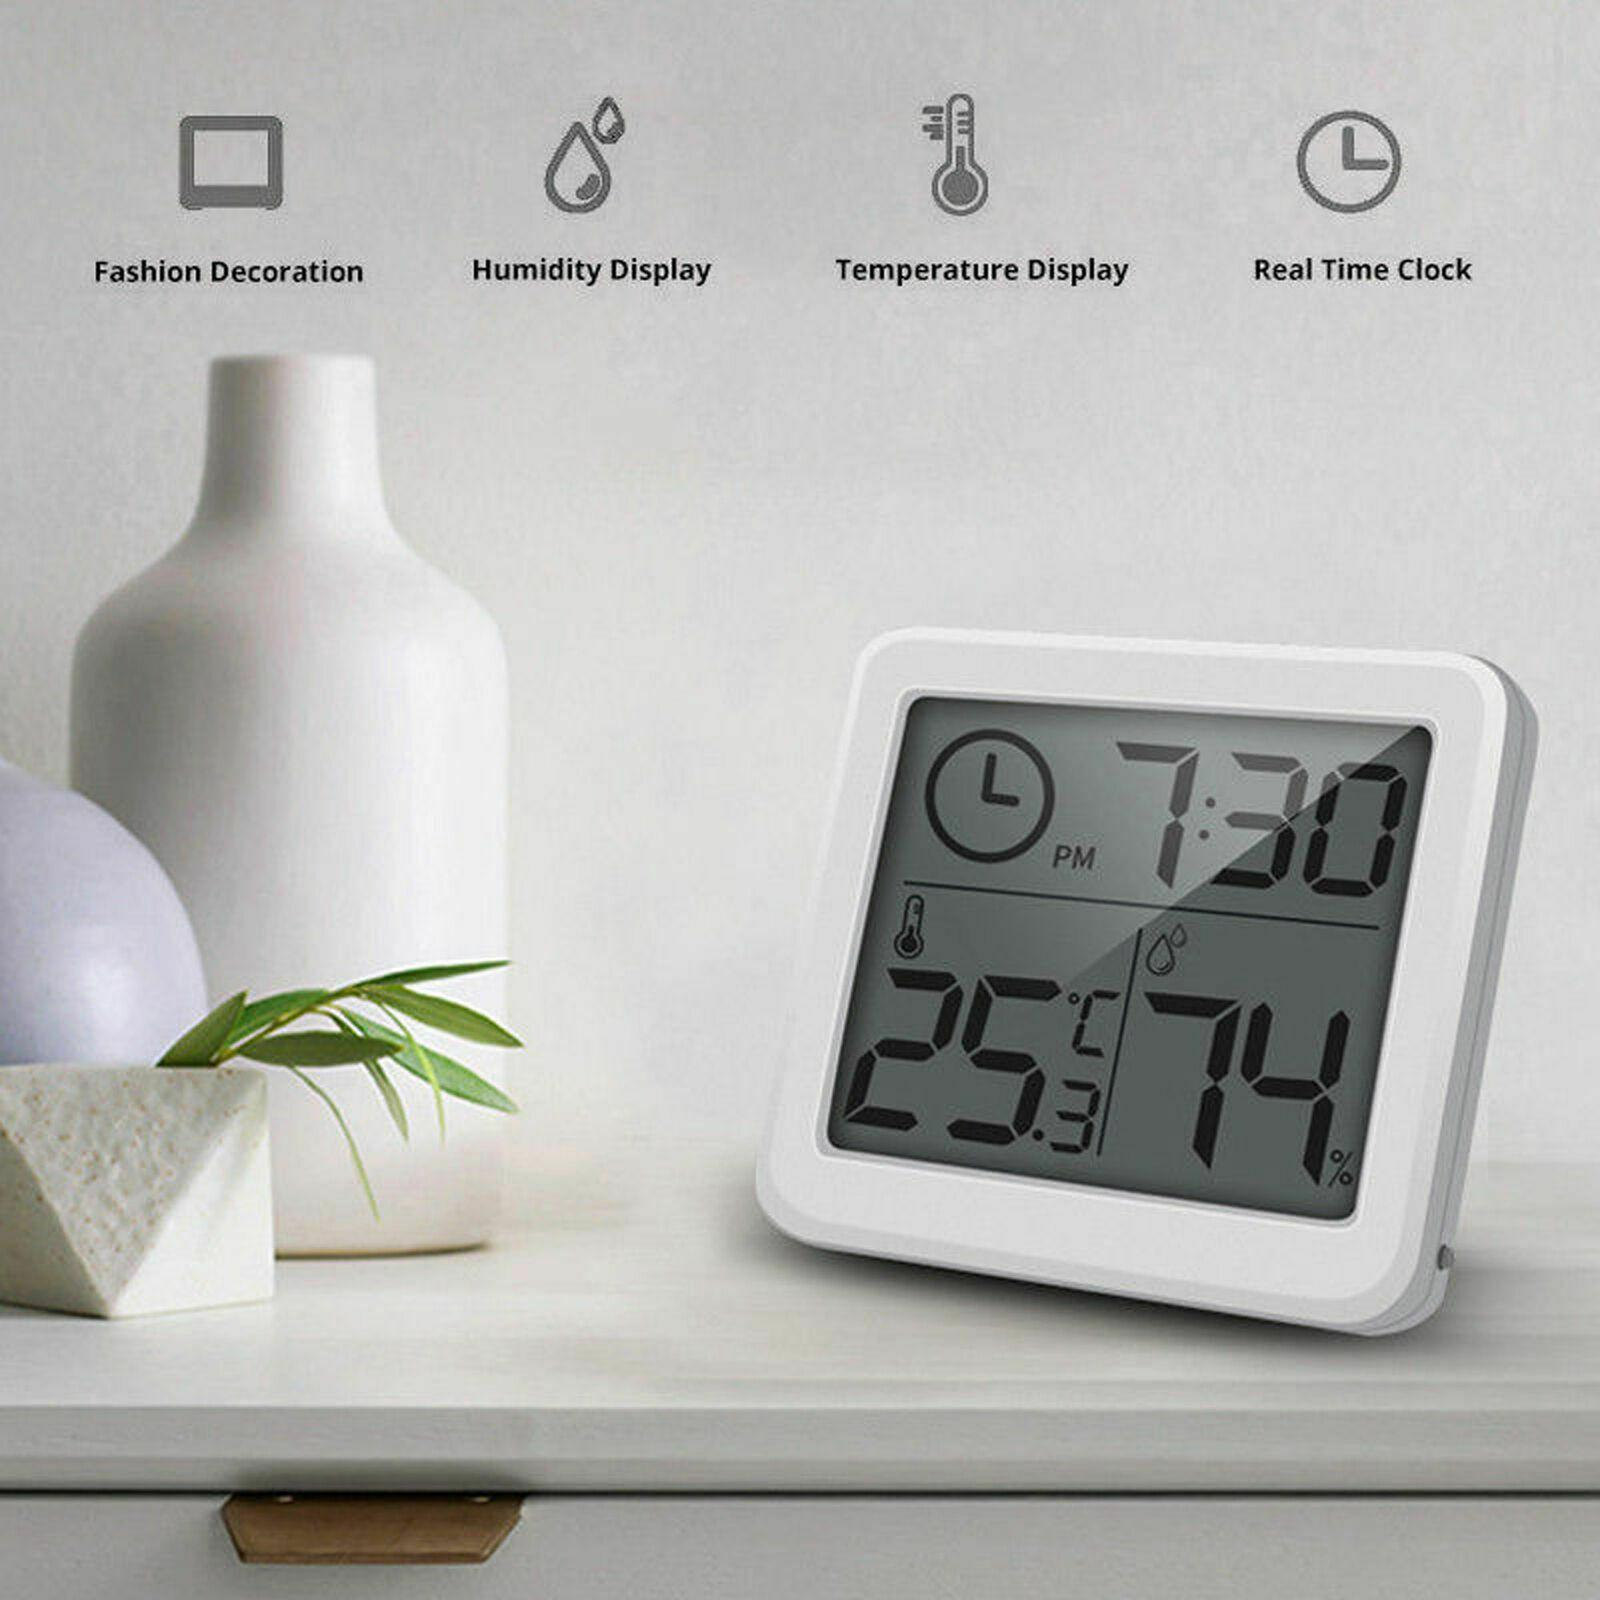 Good LCD Digital Alarm Clock Thermometer Temperature Humidity Hygrometer Meter Home Office Table Desk